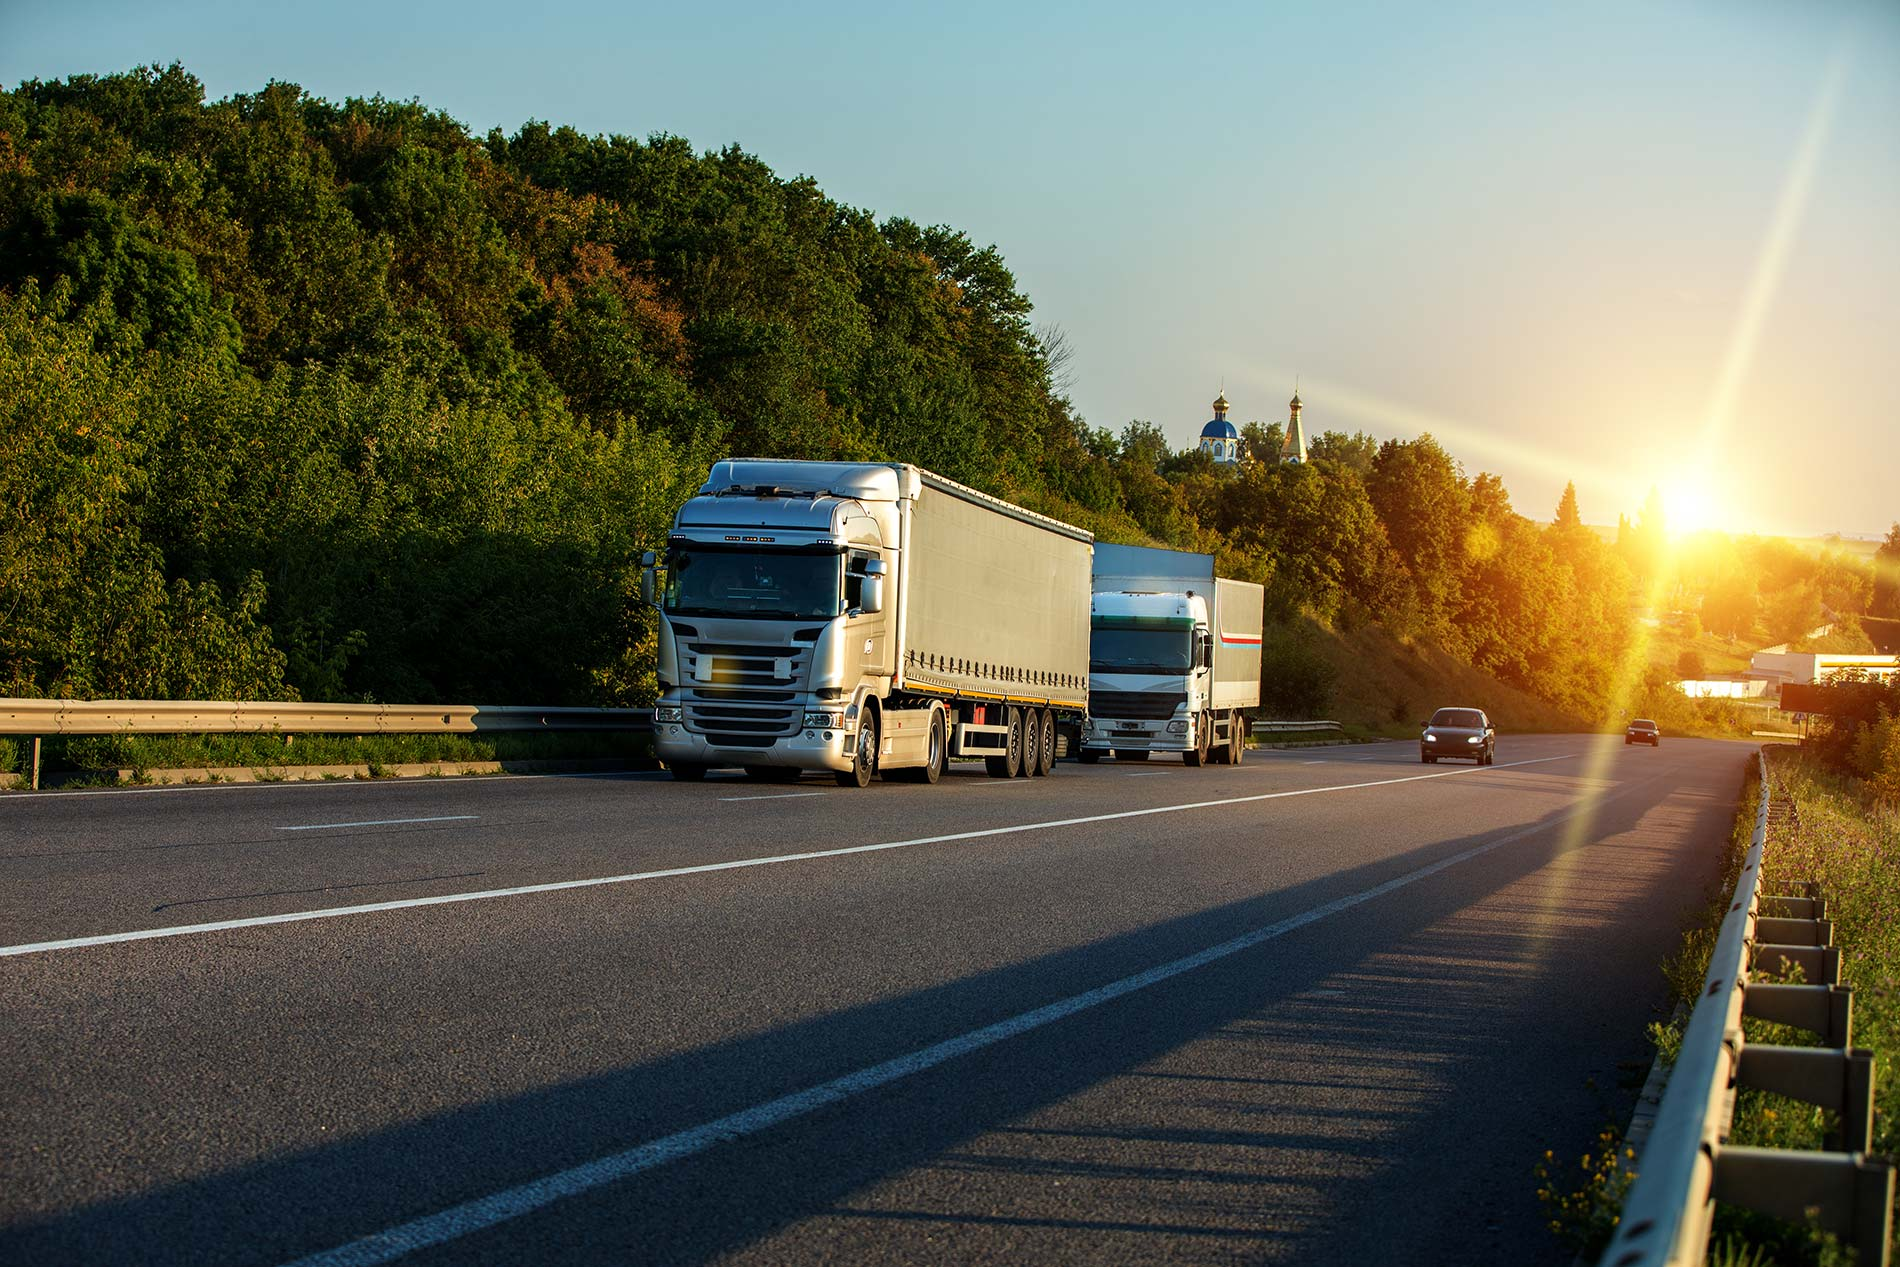 How to drive safe near large trucks